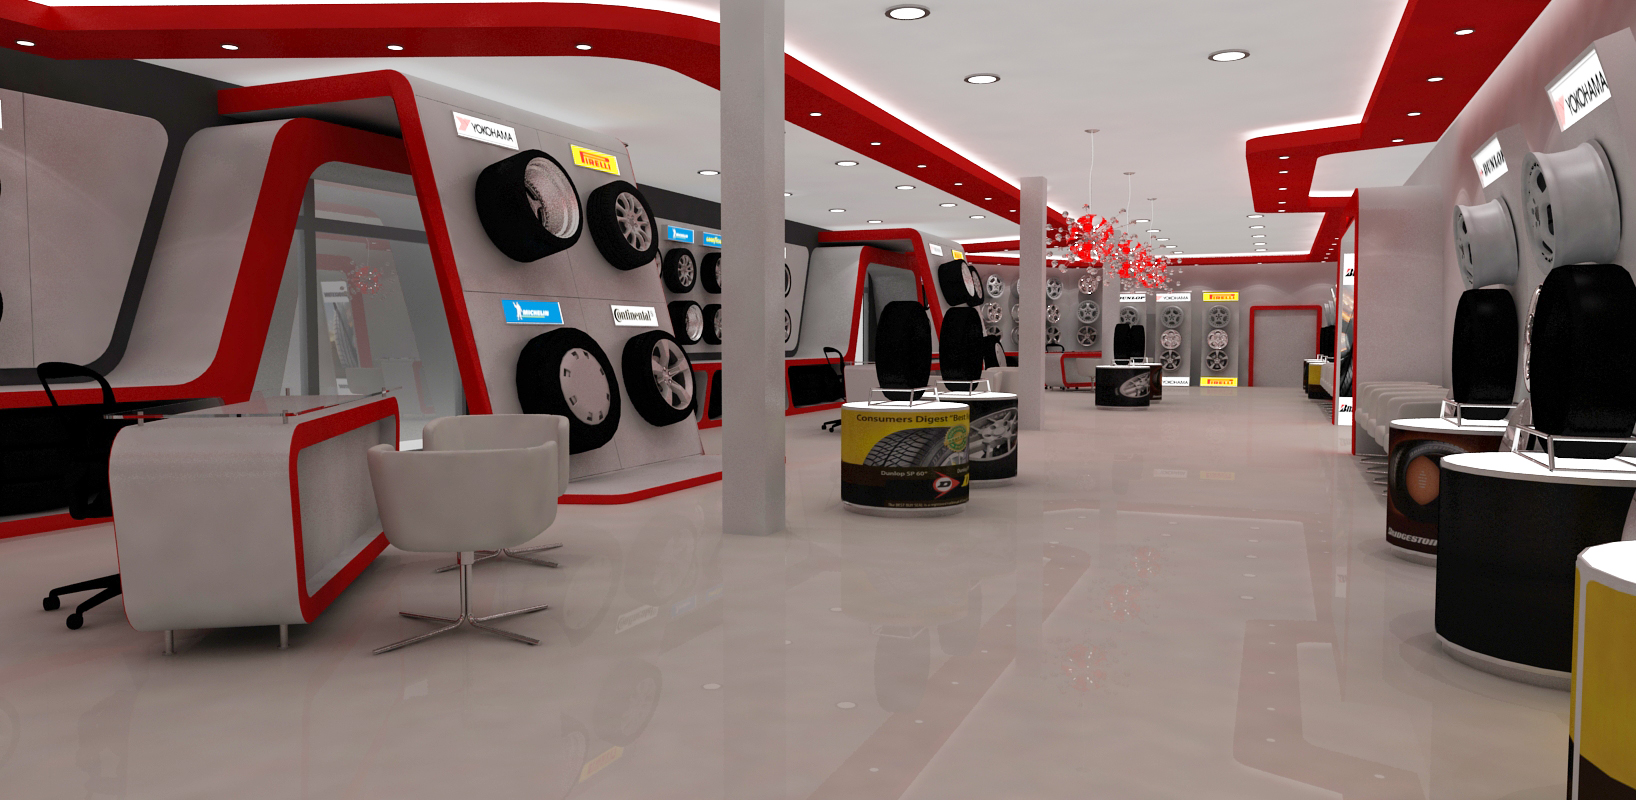 Fashion Exhibition Stand Design : Automotive tyre showroom concept by yahkoob valappil at